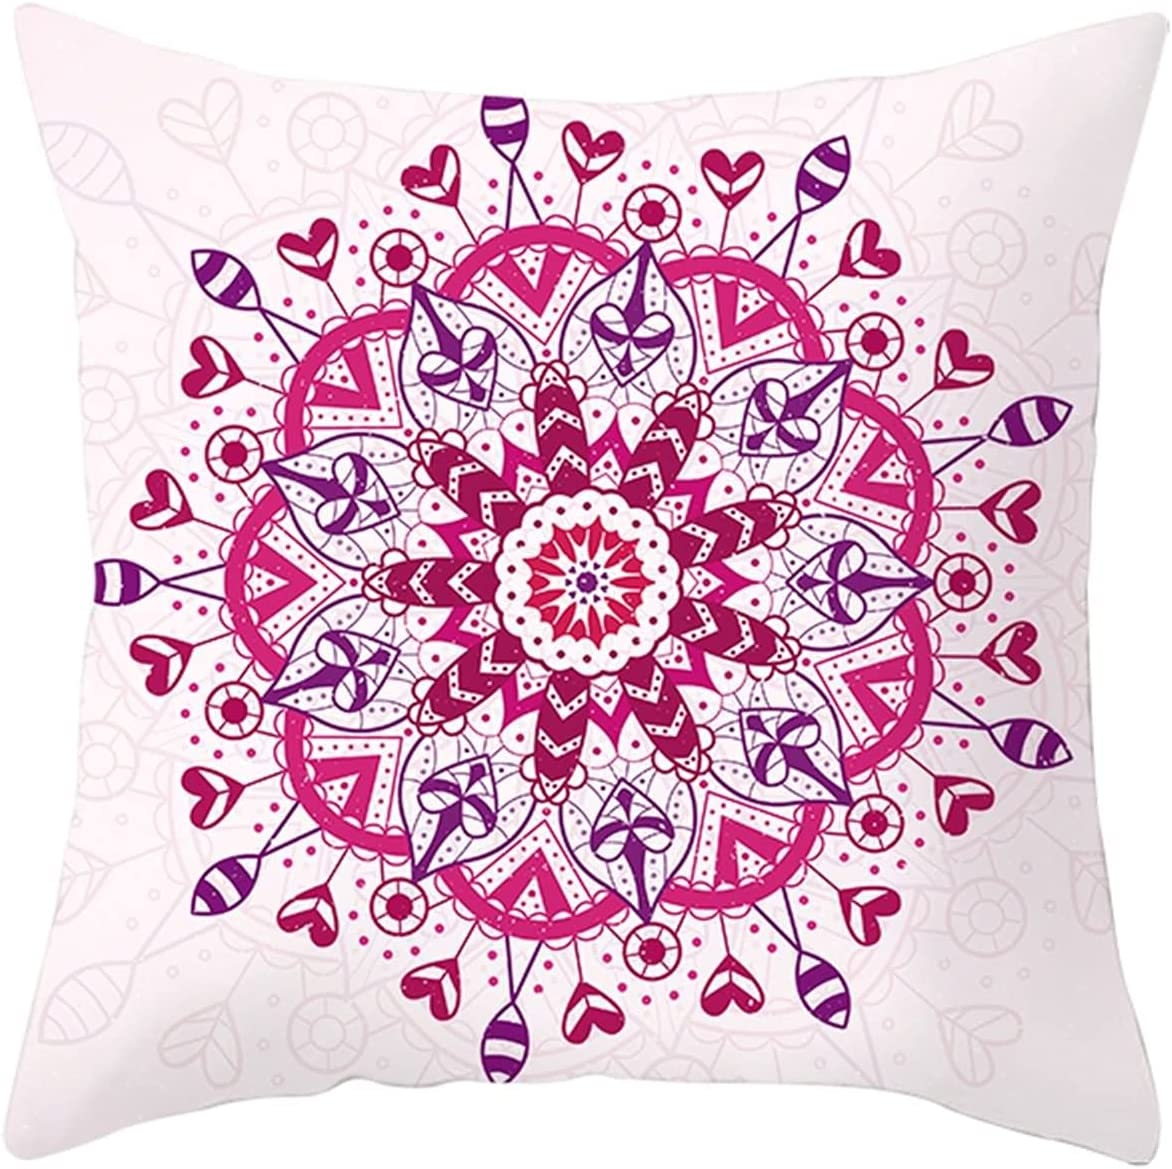 Daesar Decorative Free shipping on posting reviews Throw Pillow Cases Pink Red 70% OFF Outlet Cushion Case Sofa